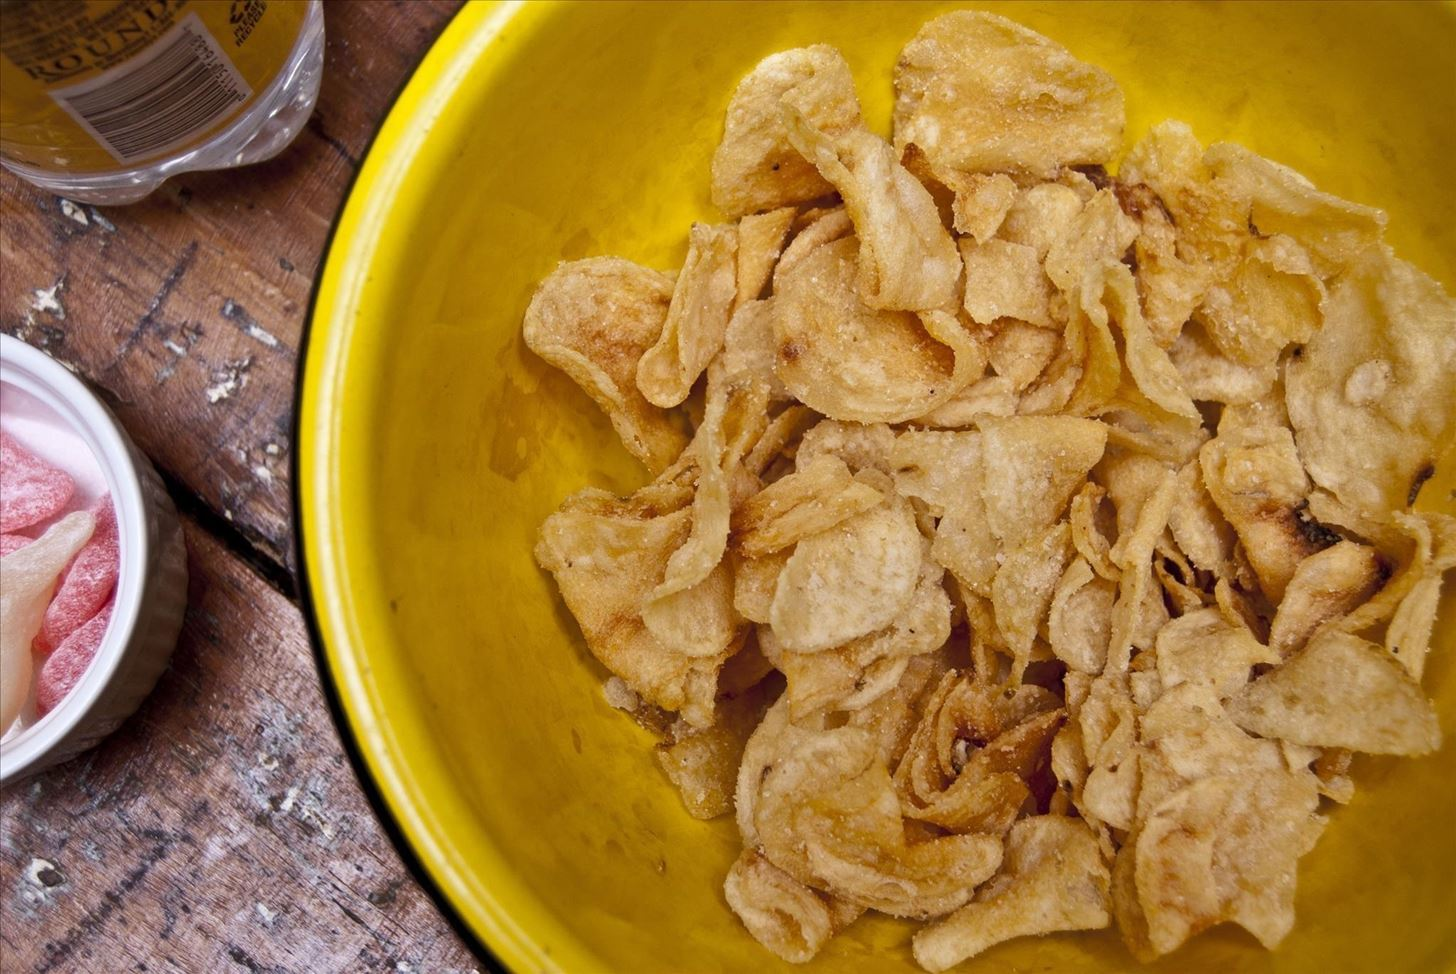 5 Delicious Ways to Reinvent Your Stale Potato Chips